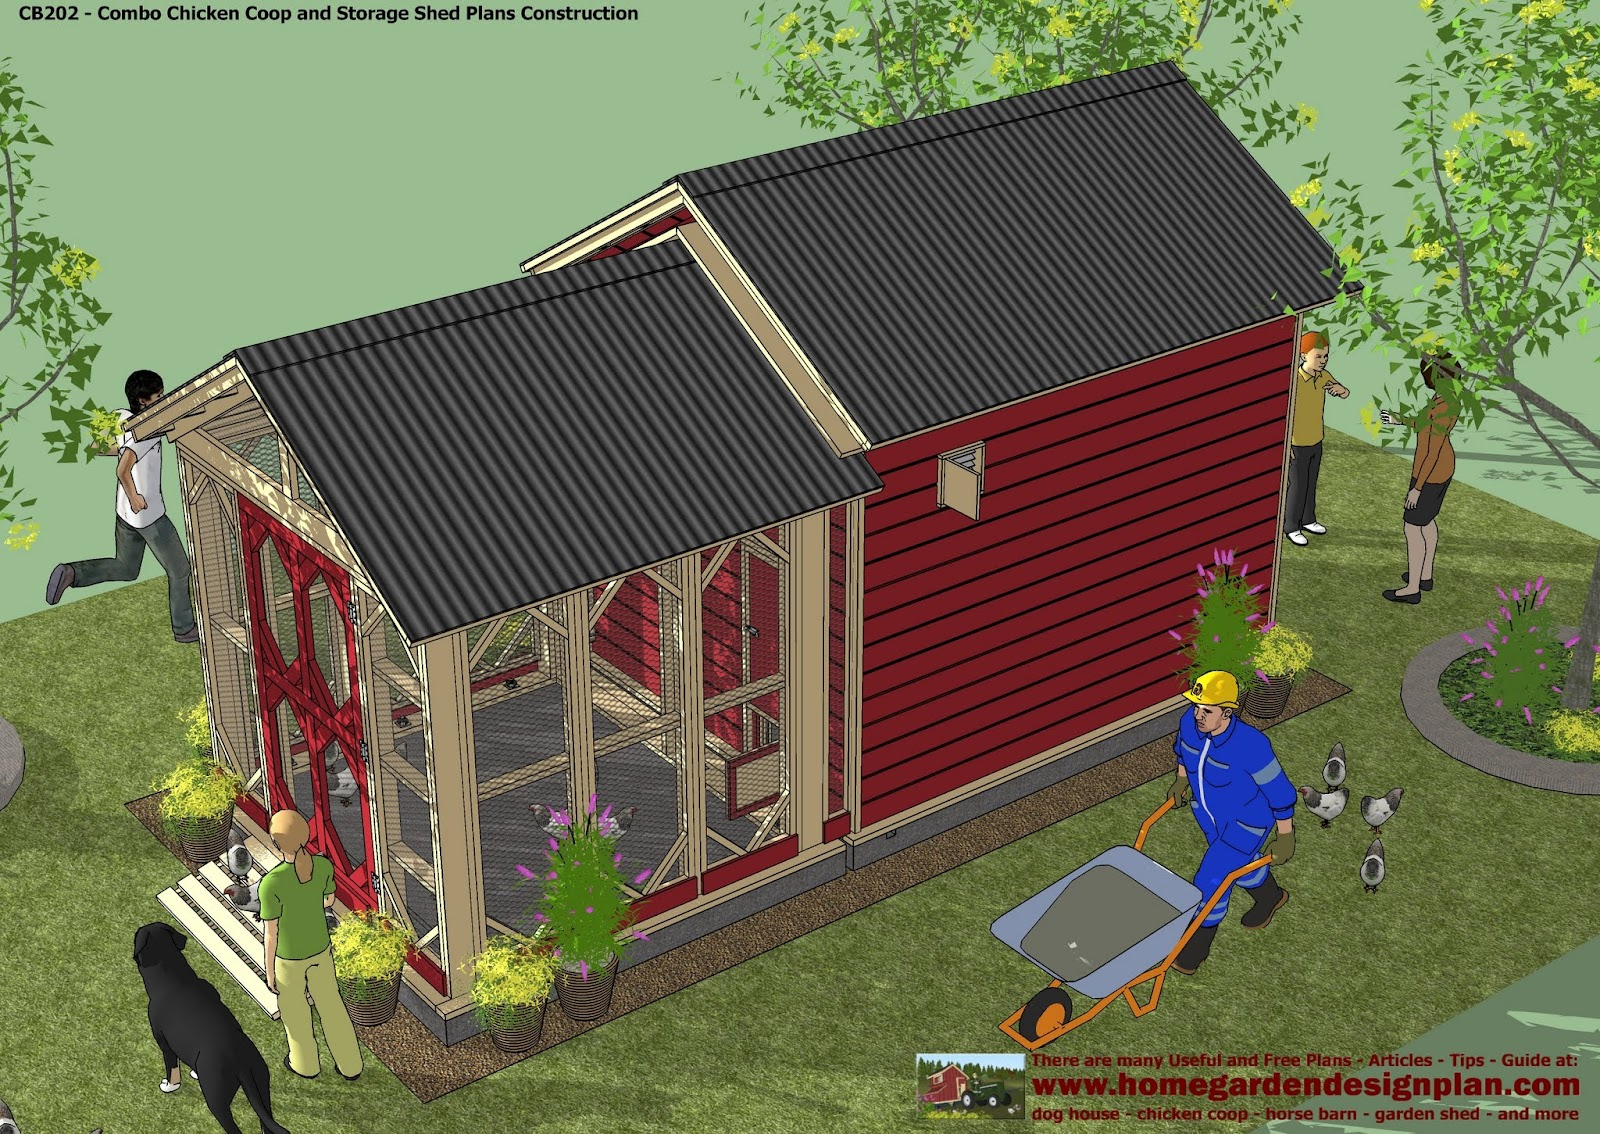 For Chick Coop Cb202 Combo Plans Chicken Coop Plans